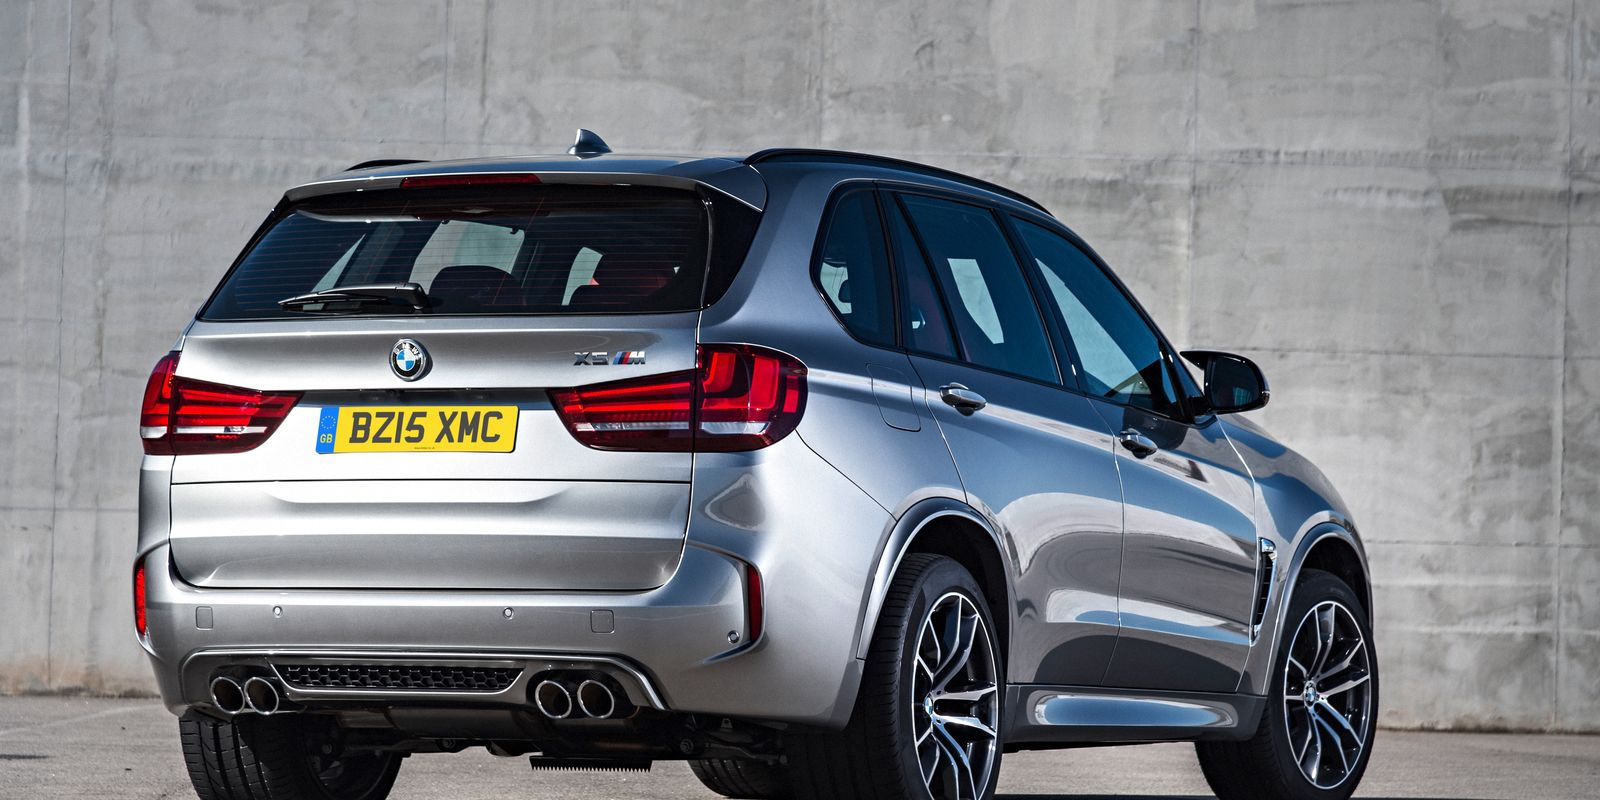 Mercedes Suv Models >> BMW X5M Review | carwow